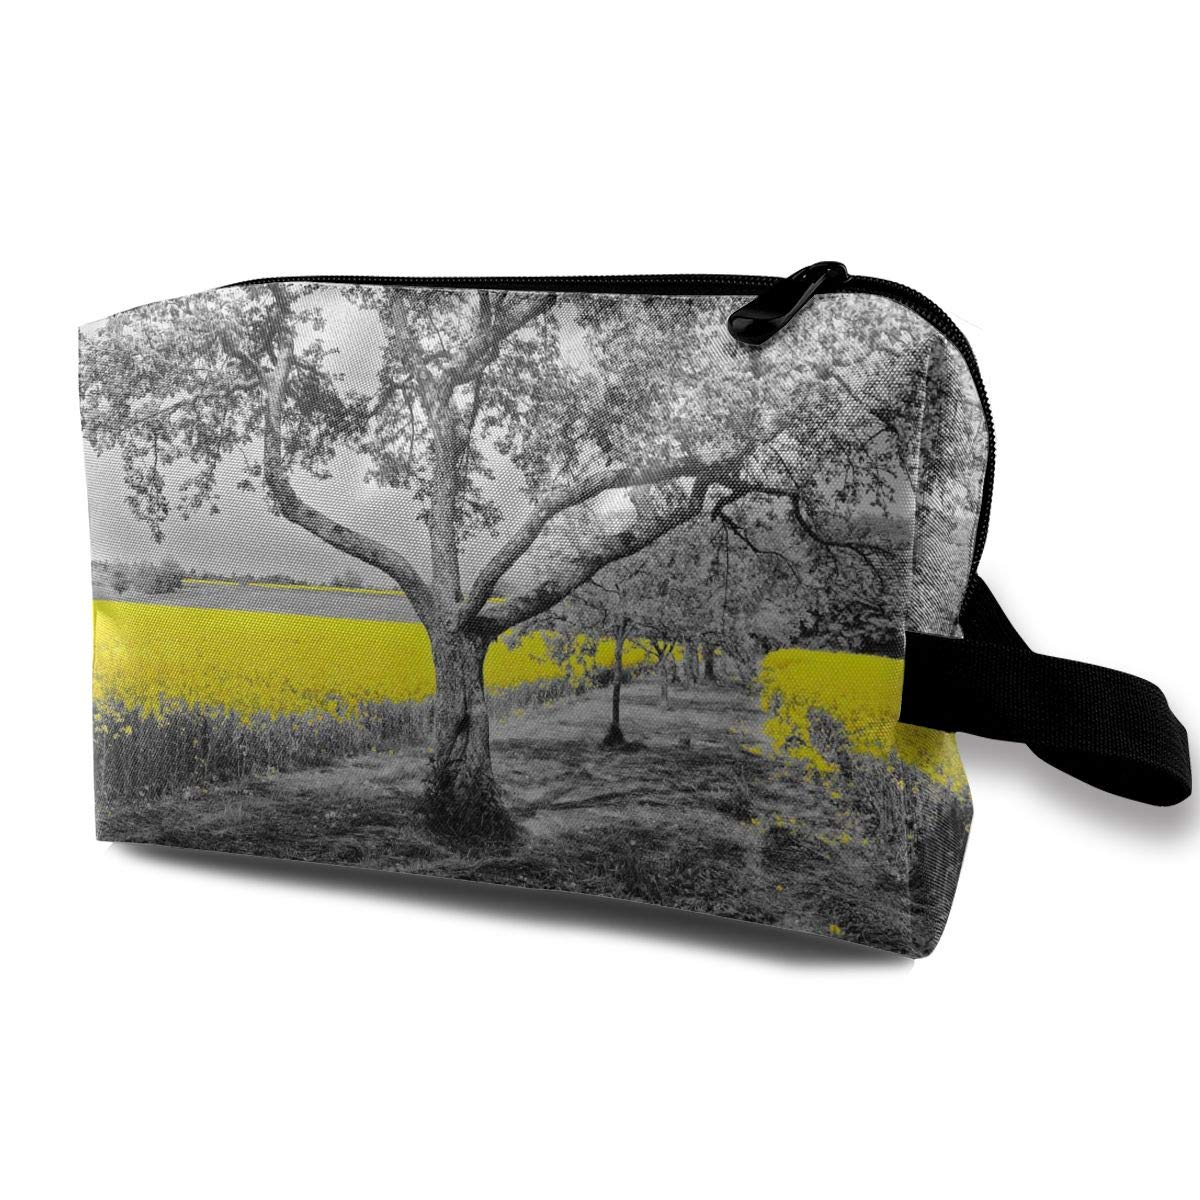 Mikonsu Yellow Field in Black and White Nature Makeup Bag Portable Travel Cosmetic Cute Sloth Toiletry Bag Organizer Accessories Case Tools Case for Beauty Women